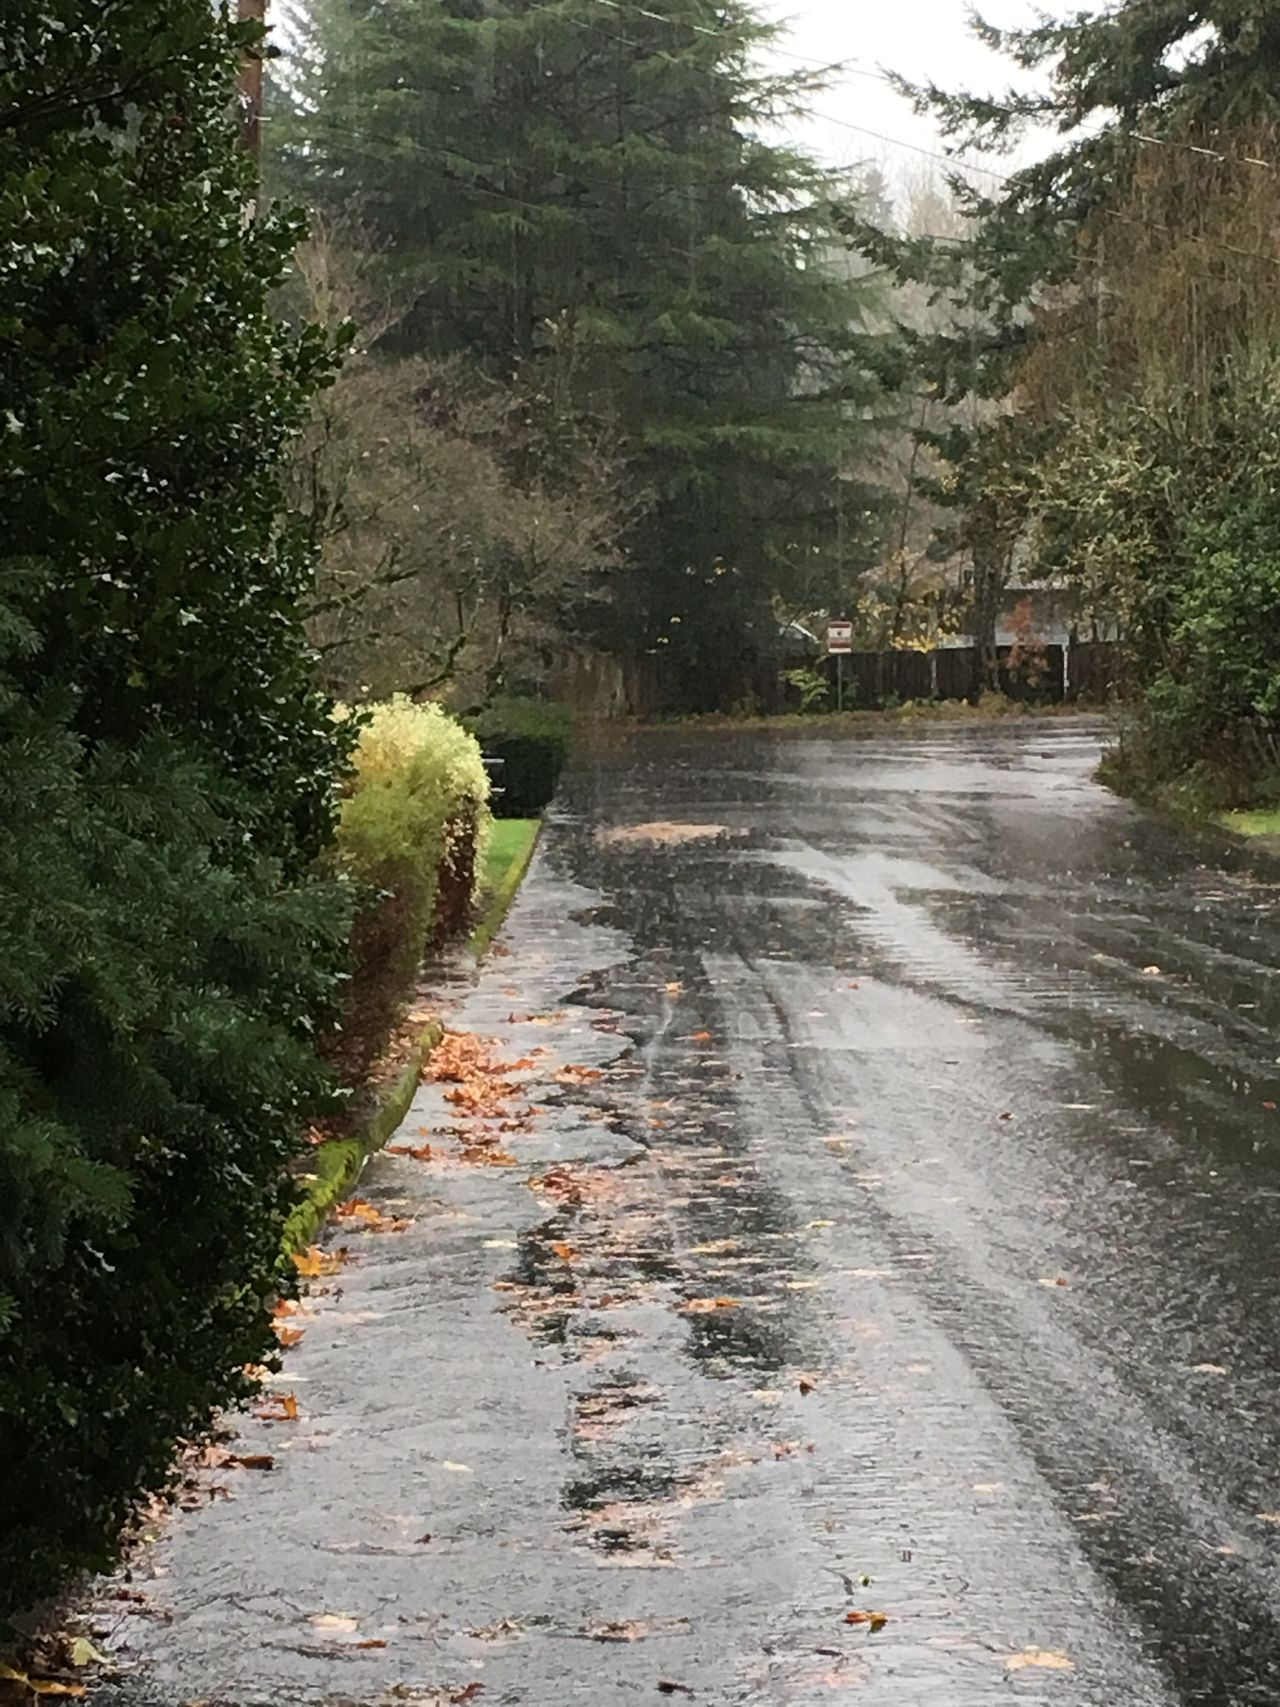 Don't let the rain stop you. Get outside and enjoy ☔️😊 Tree The Way Forward No People Outdoors Road Day Water Rain PNW Pacific Northwest  Opt Outside Liquid Sunshine Trees Rainy Day